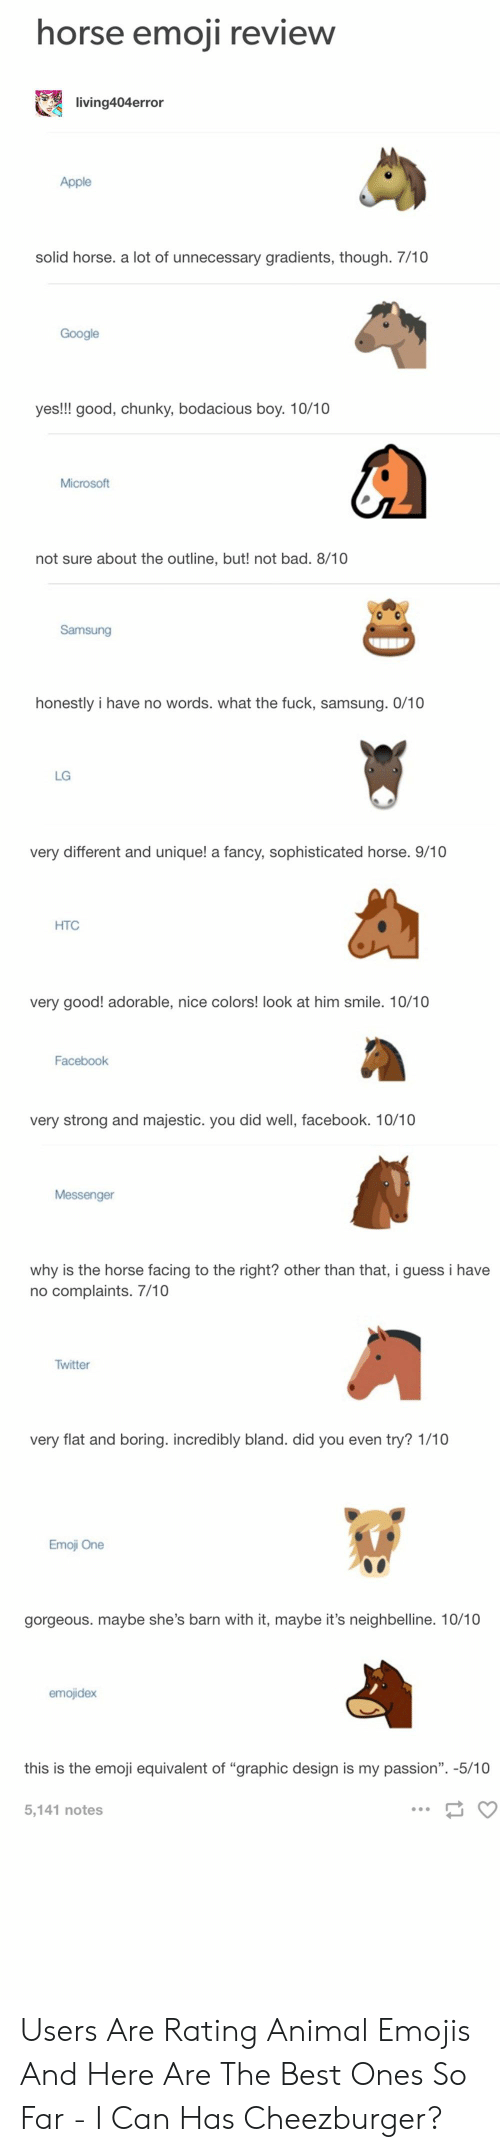 "Apple, Bad, and Emoji: horse emoii review  living404error  Apple  solid horse. a lot of unnecessary gradients, though. 7/10  Google  yes!!! good, chunky, bodacious boy. 10/10  Microsoft  not sure about the outline, but! not bad. 8/10  Samsung  honestly i have no words. what the fuck, samsung. 0/10  LG  very different and unique! a fancy, sophisticated horse. 9/10  HTC  very good! adorable, nice colors! look at him smile. 10/10  Facebook  very strong and majestic. you did well, facebook. 10/10  why is the horse facing to the right? other than that, i guess i have  no complaints. 7/10  Twitter  very flat and boring. incredibly bland. did you even try? 1/10  Emoji One  gorgeous. maybe she's barn with it, maybe it's neighbelline. 10/10  this is the emoji equivalent of ""graphic design is my passion"". -5/10  5,141 notes Users Are Rating Animal Emojis And Here Are The Best Ones So Far - I Can Has Cheezburger?"